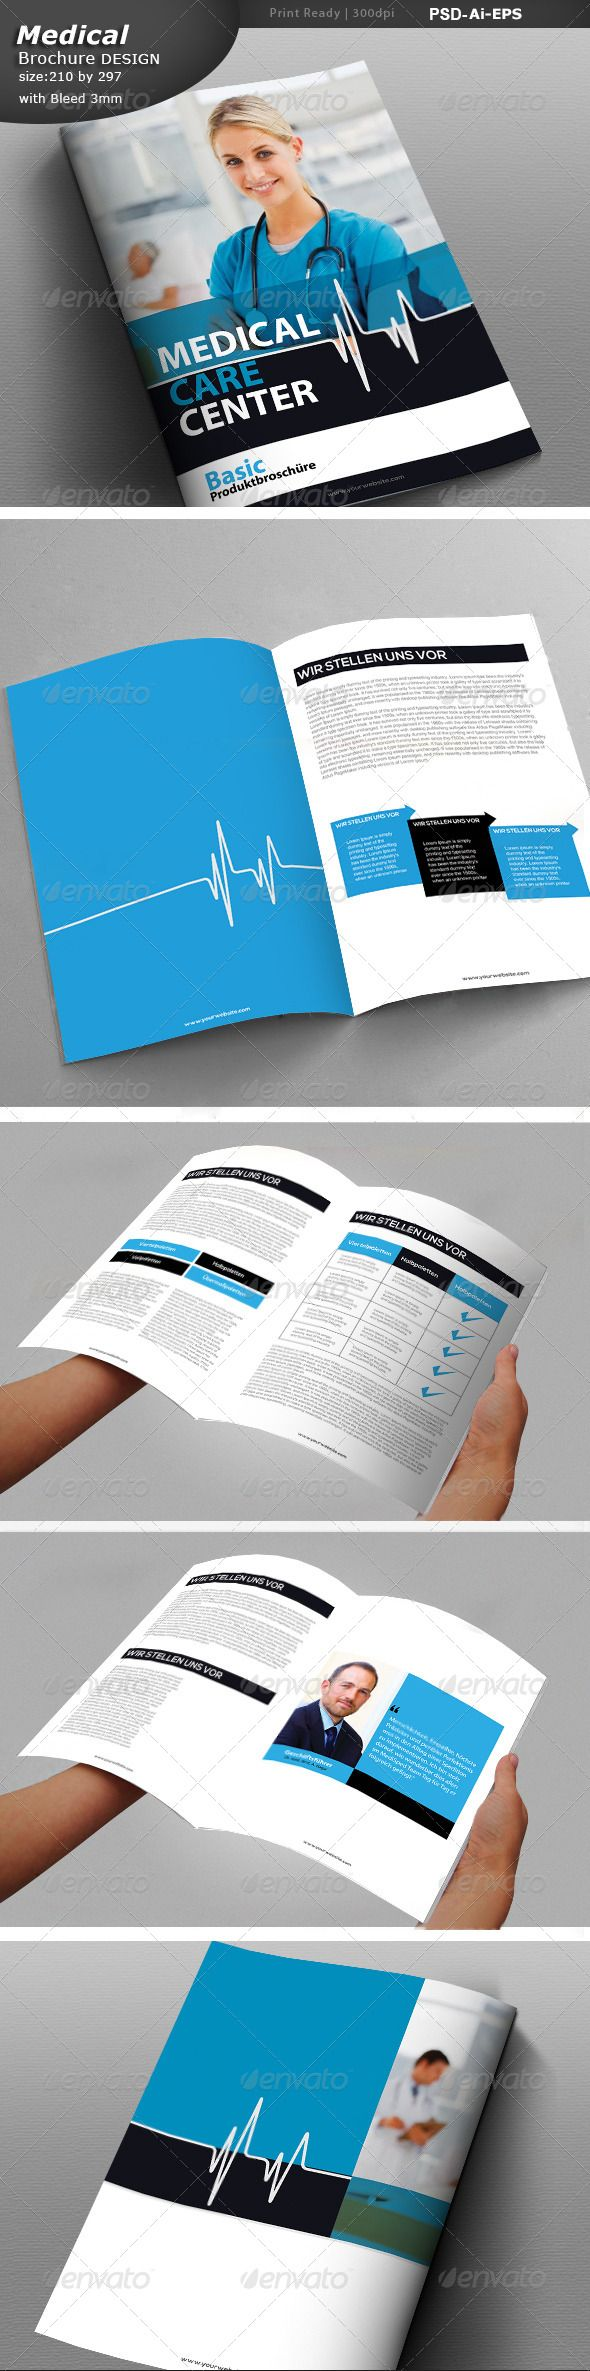 Medical Center Brochure Design   #graphicriver